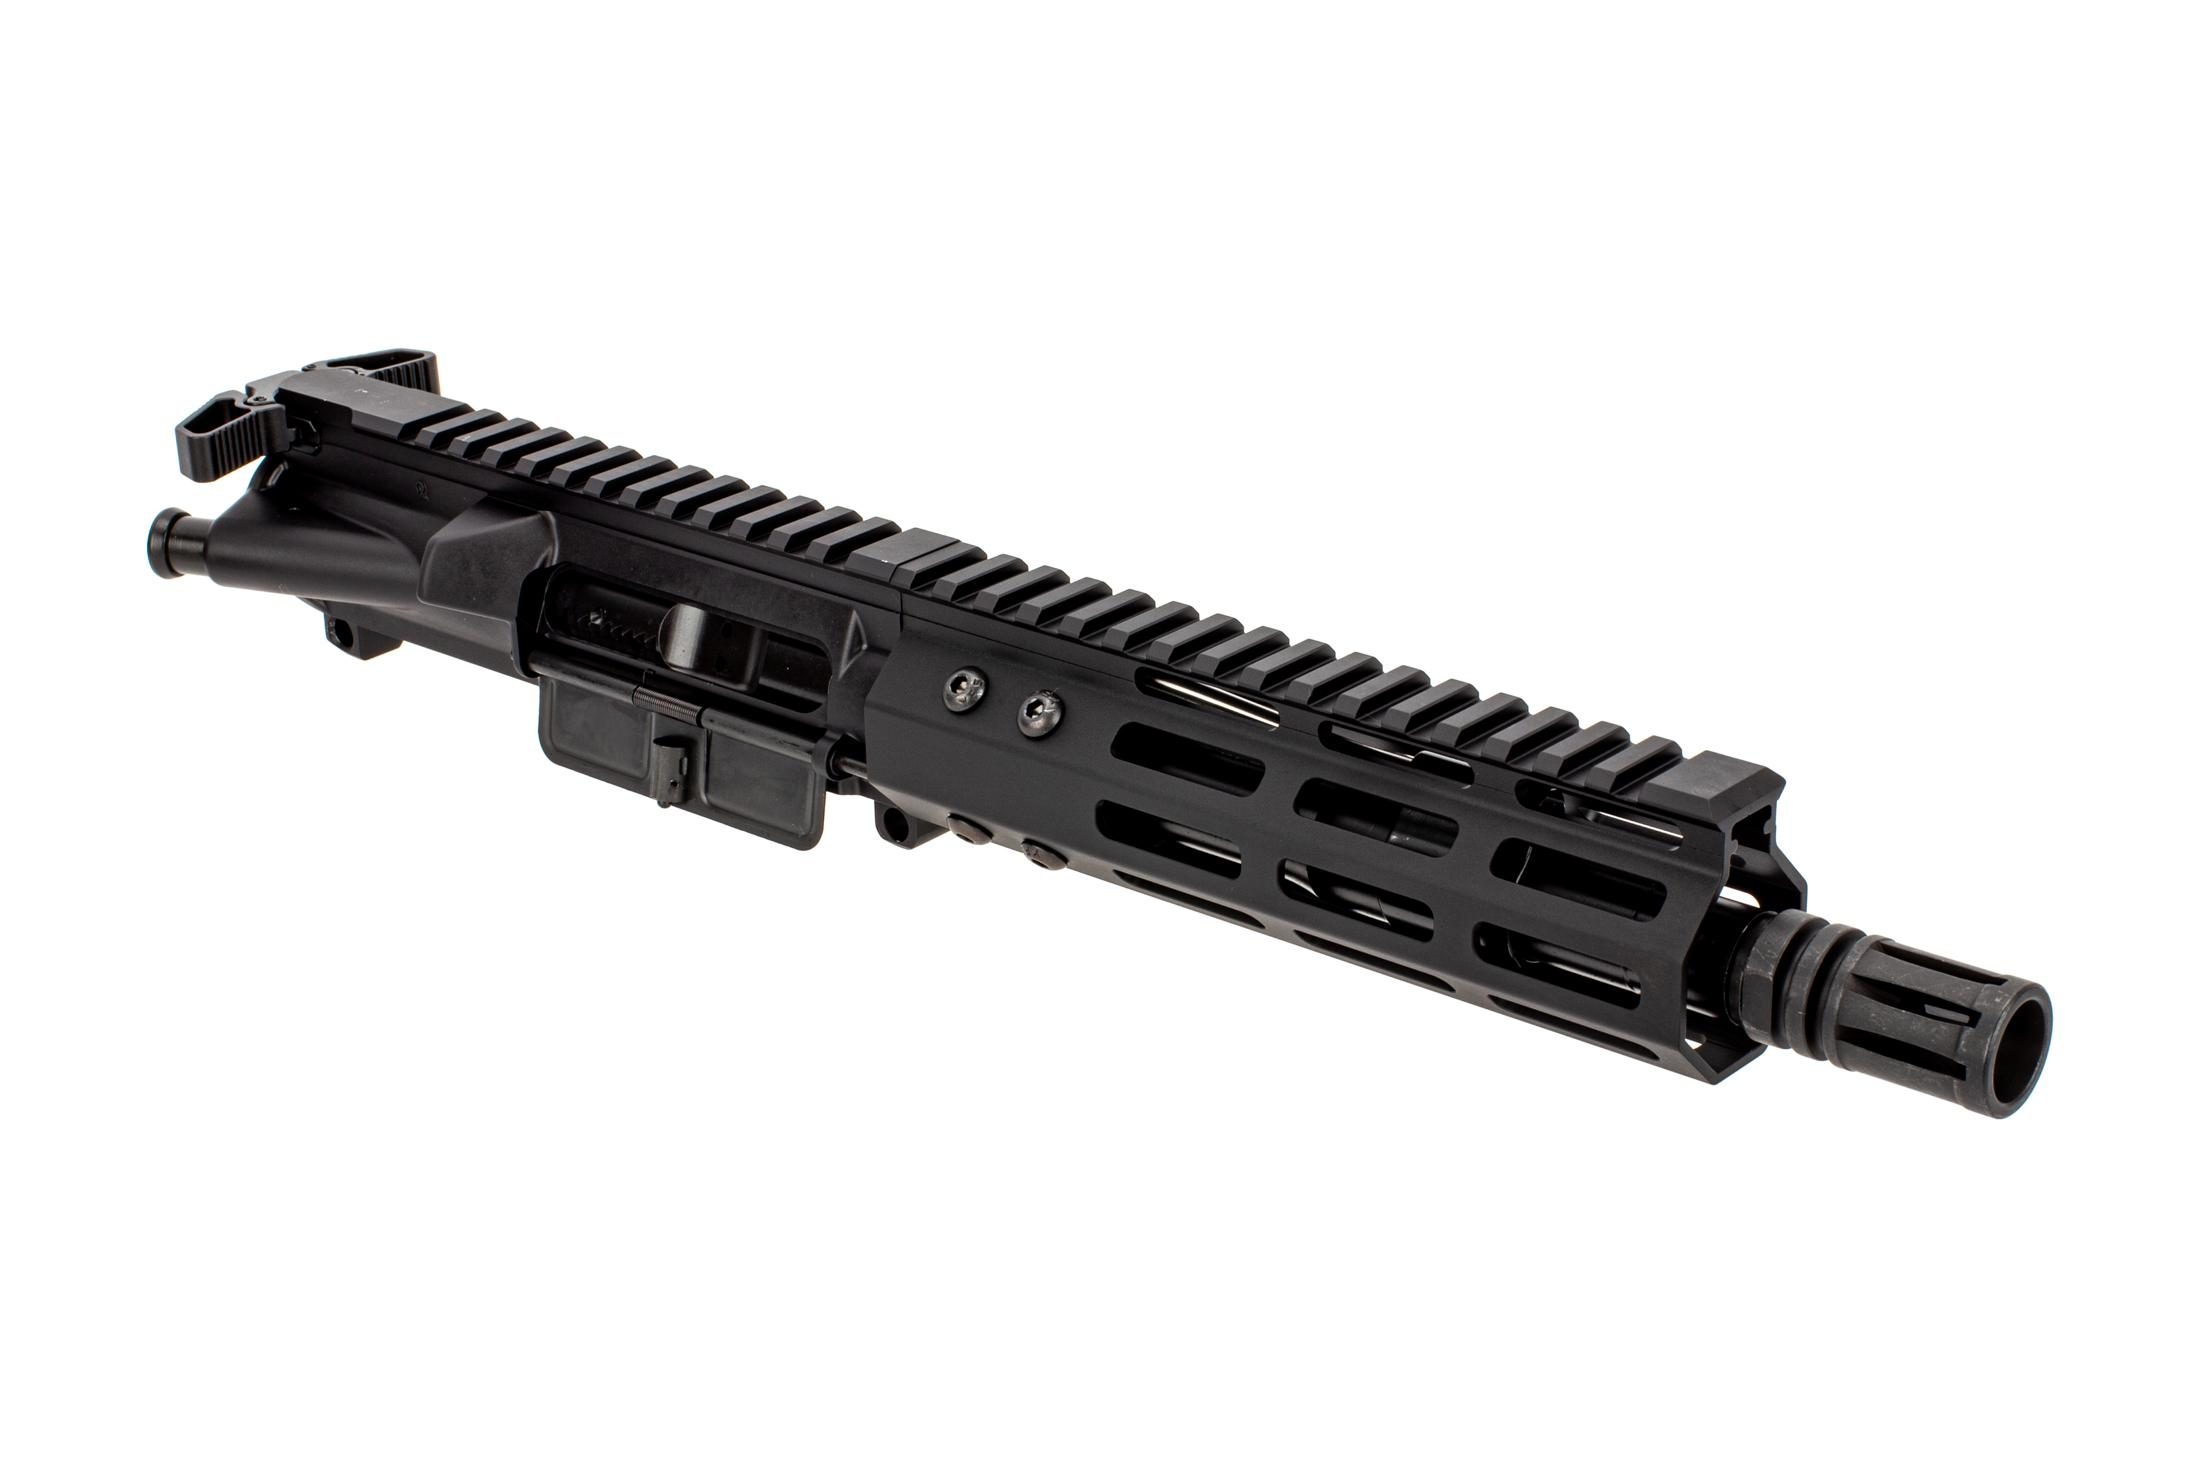 The Foxtrot Mike Products 5.56 AR15 pistol complete upper receiver features a 7.5 inch barrel